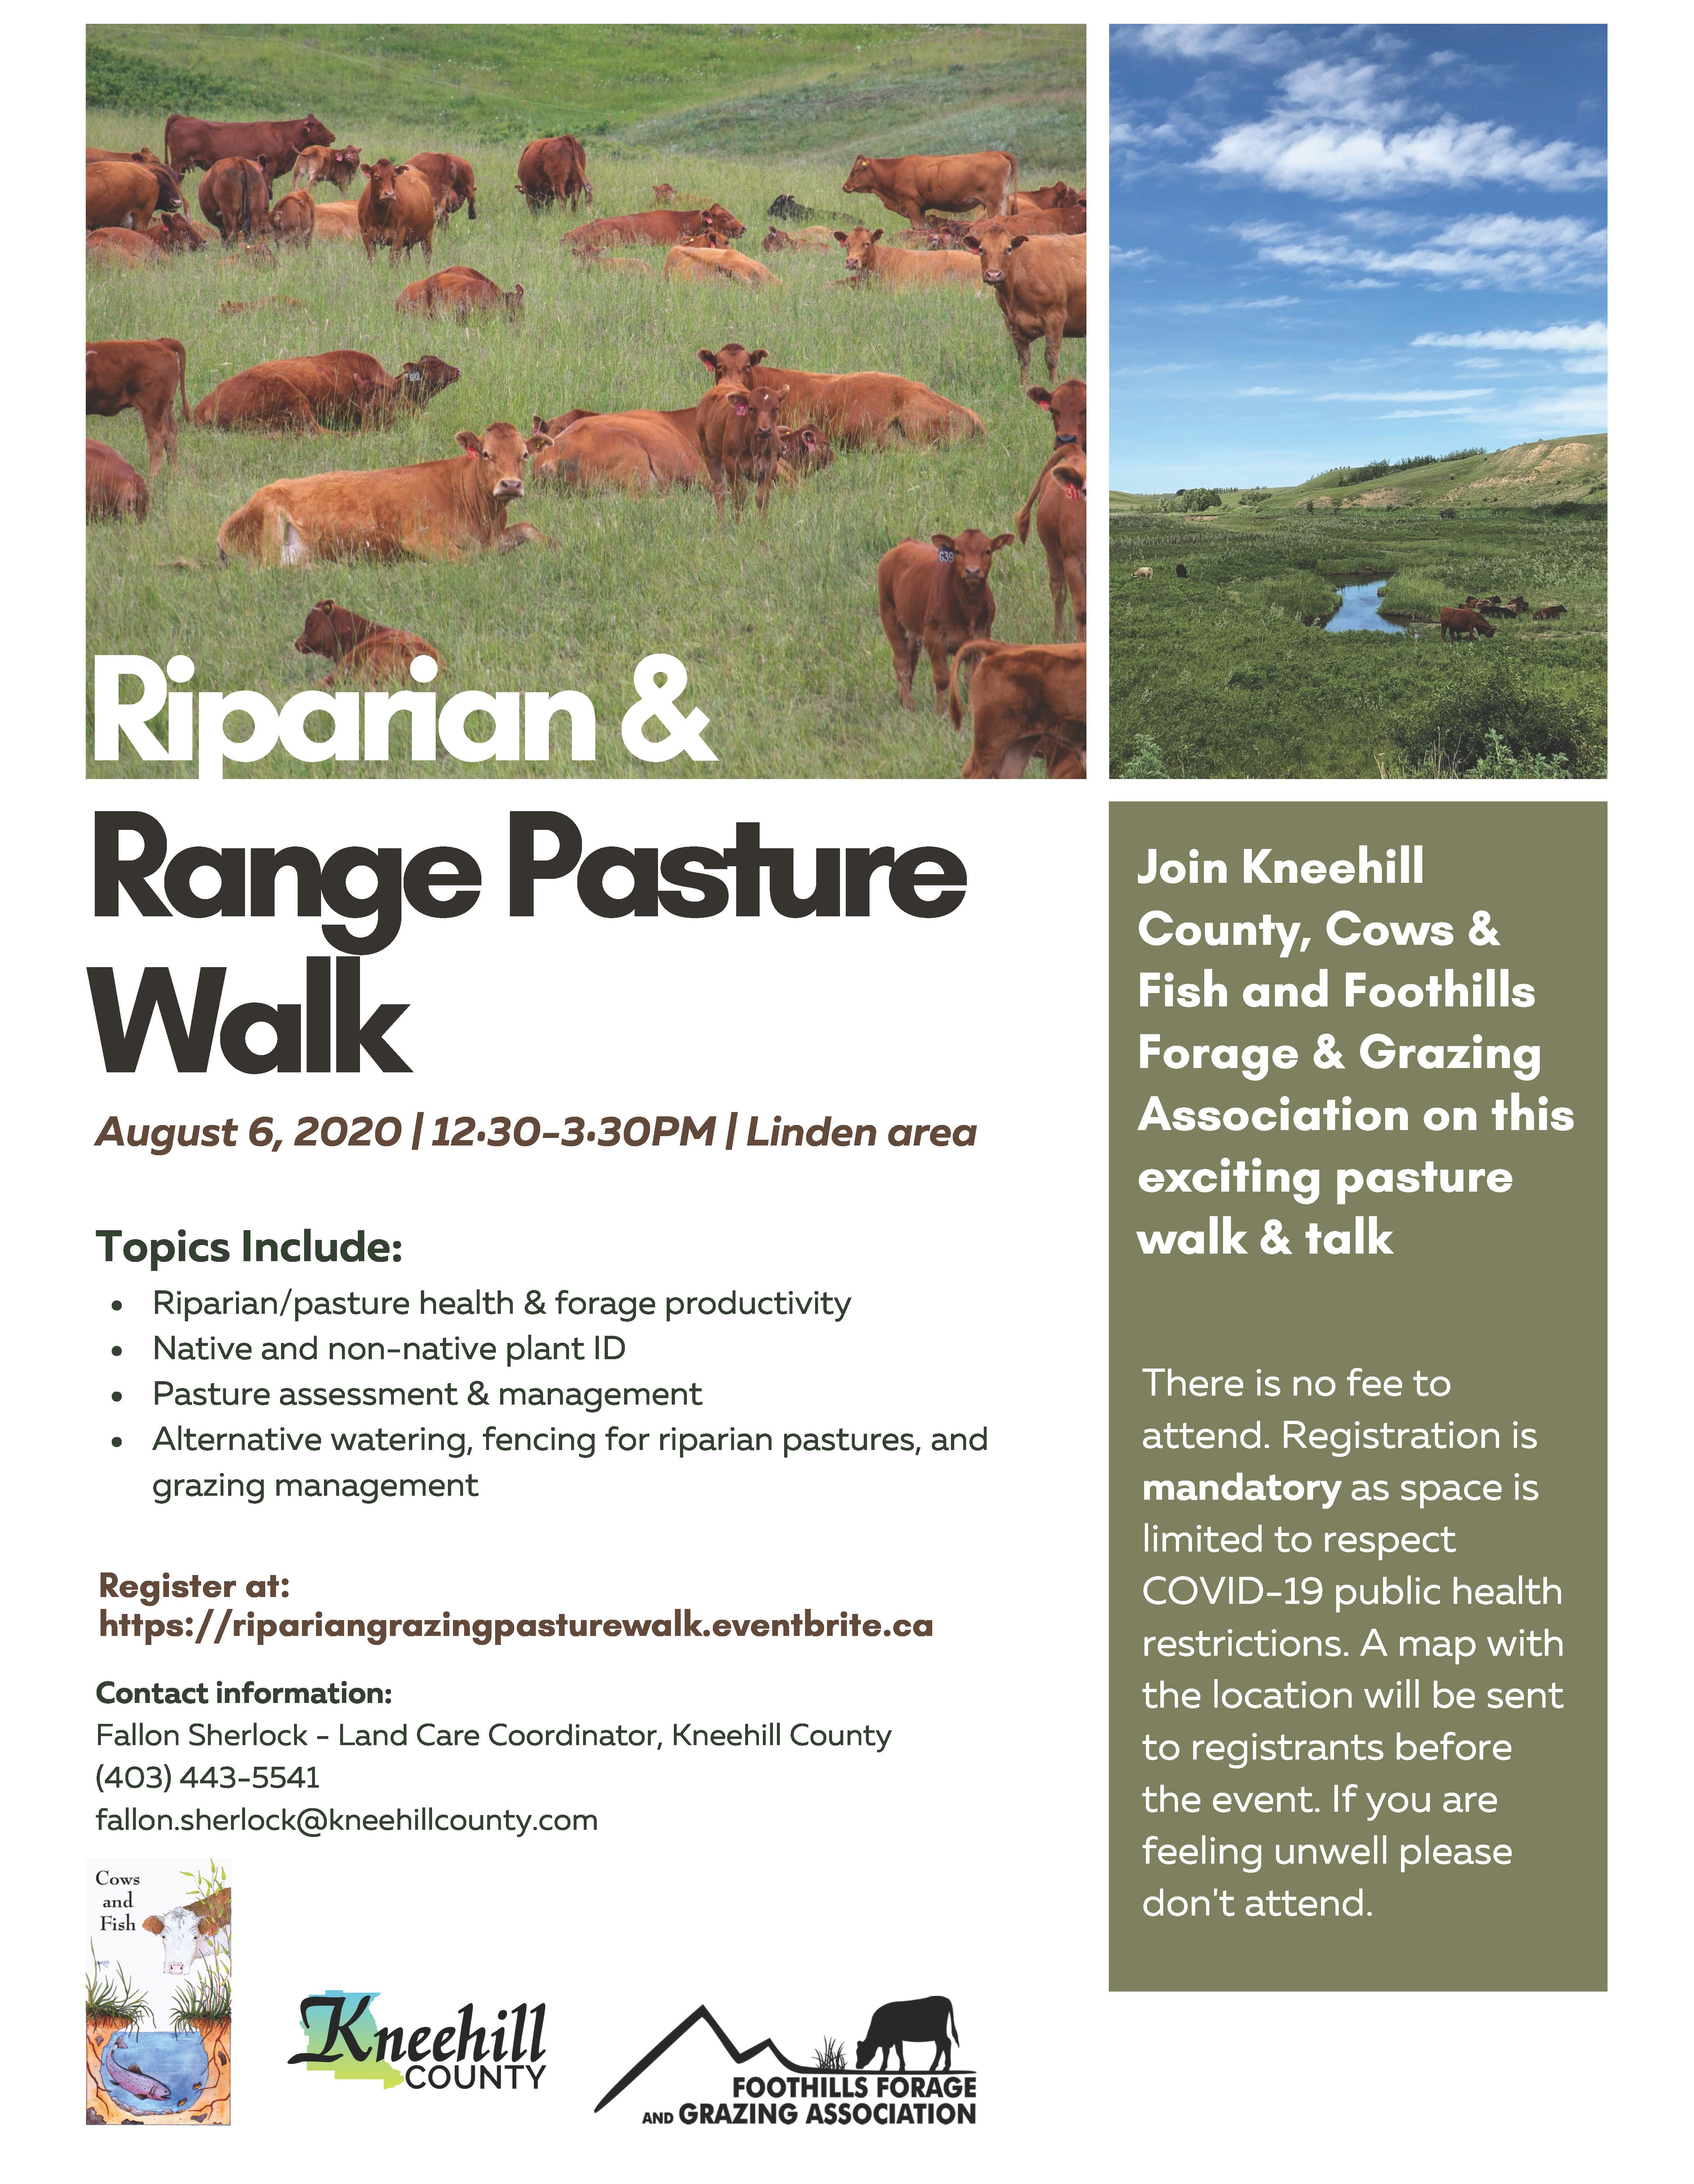 Riparian & Range Pasture Walk